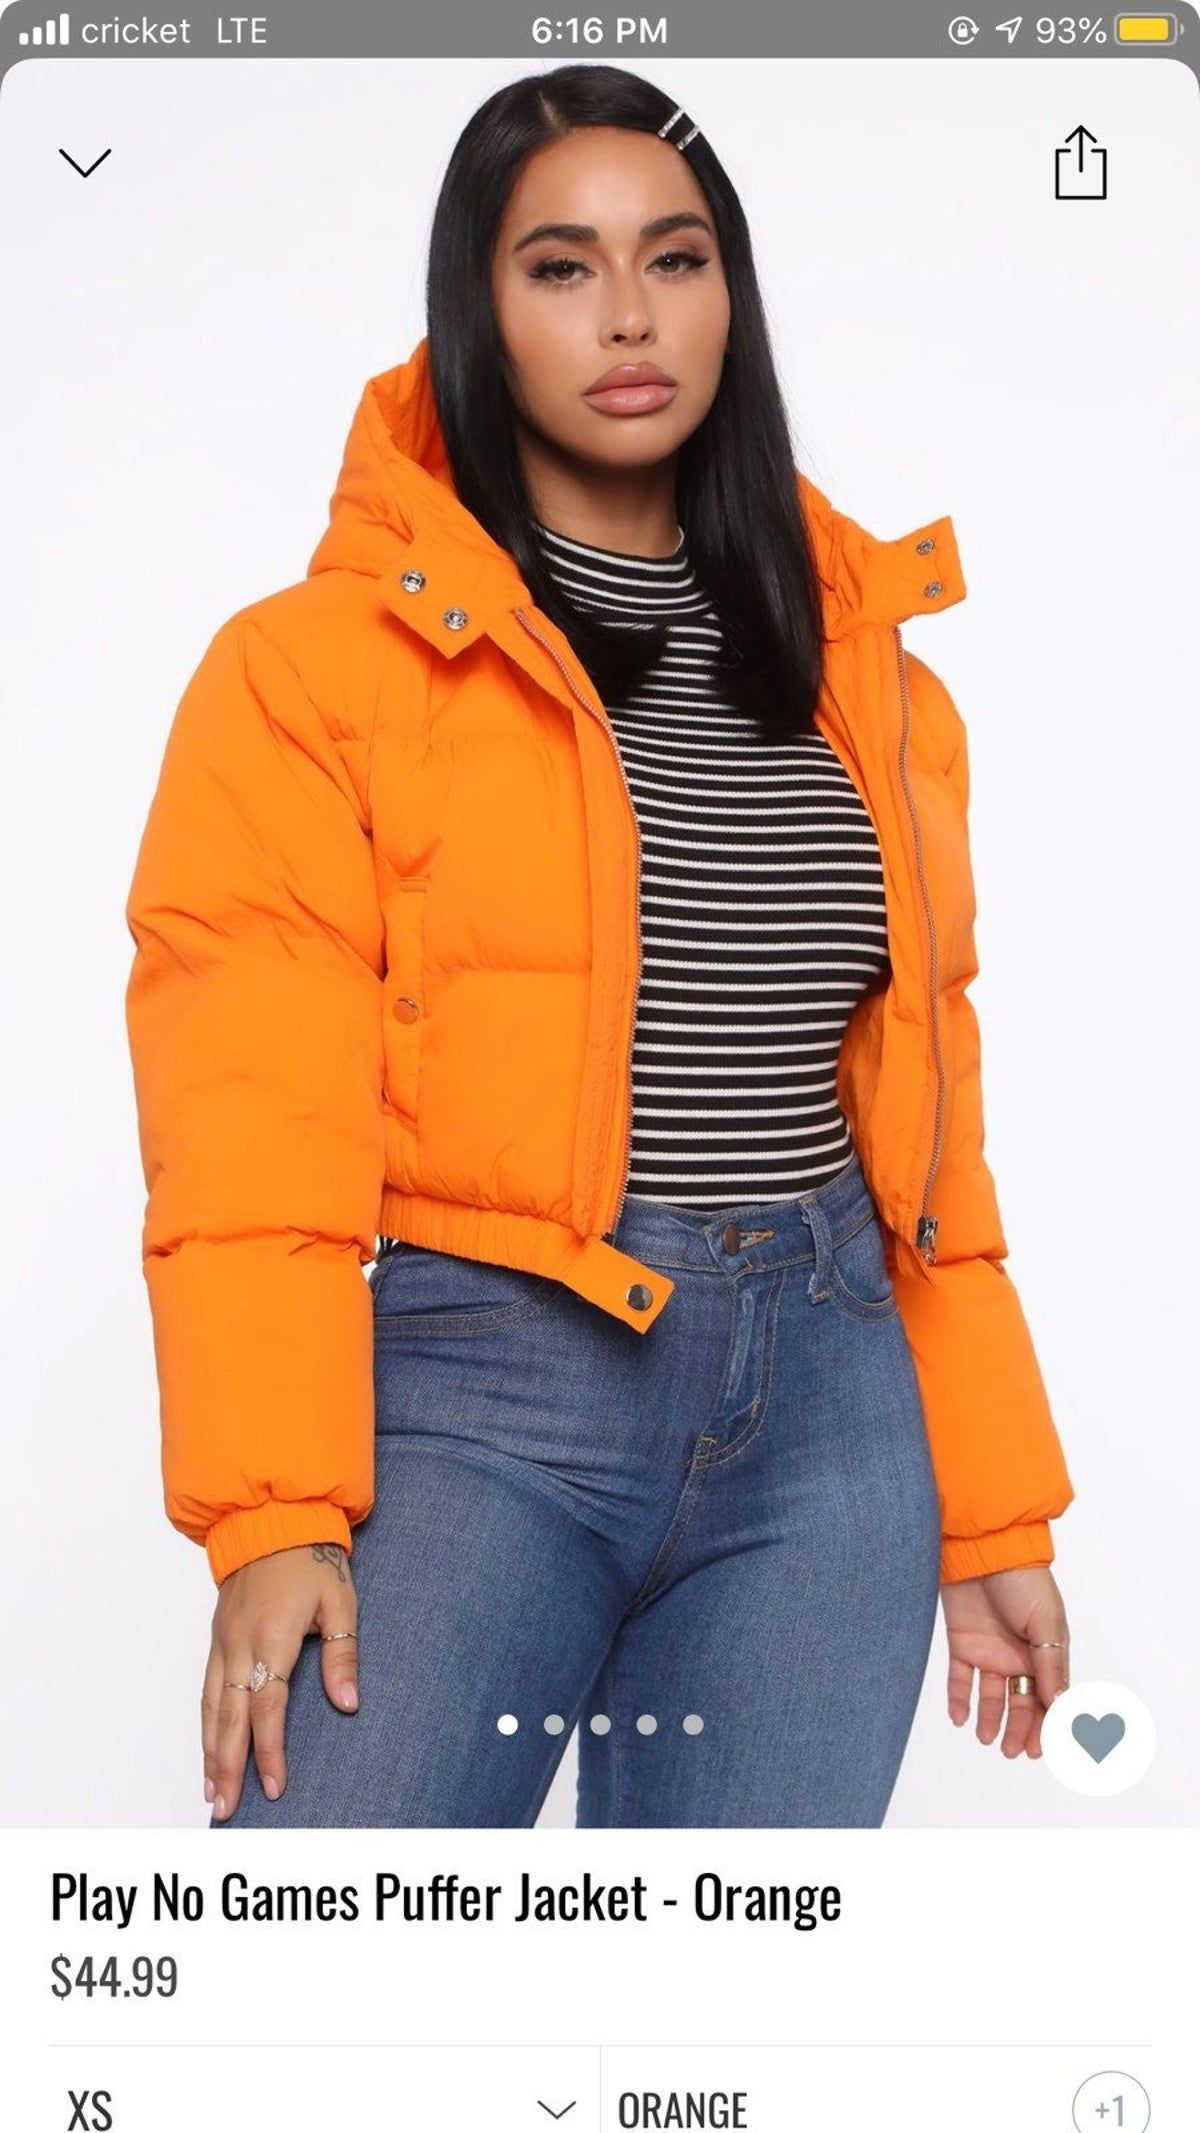 Puffer Coat Puffer Jacket Outfit Jacket Outfit Women Puffer Jacket Outfit Black Girl [ 2133 x 1200 Pixel ]